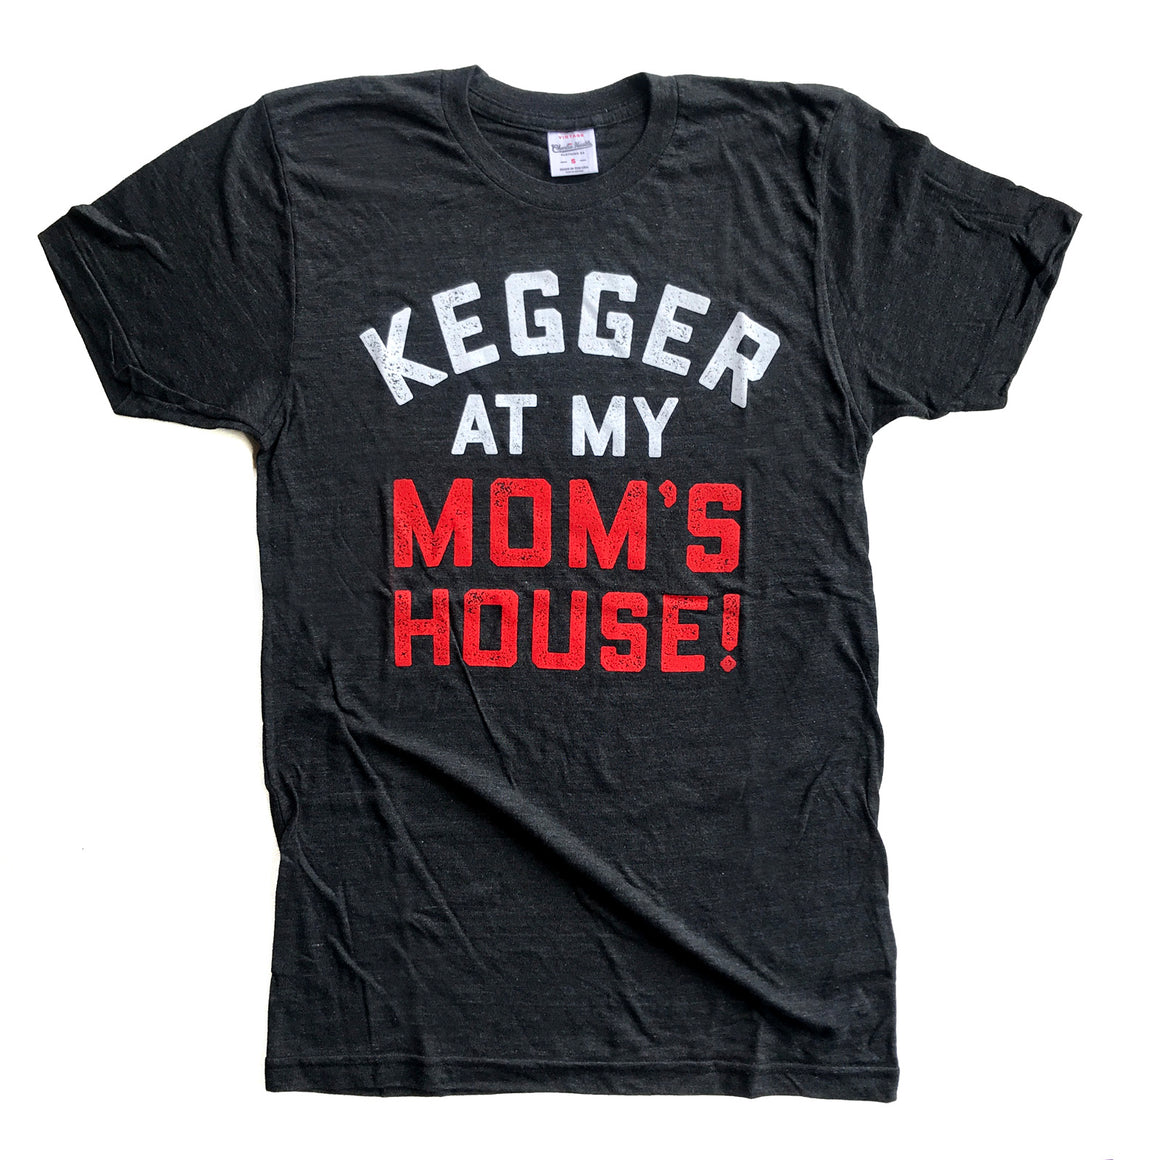 CHARLIE HUSTLE | KEGGER AT MY MOM'S